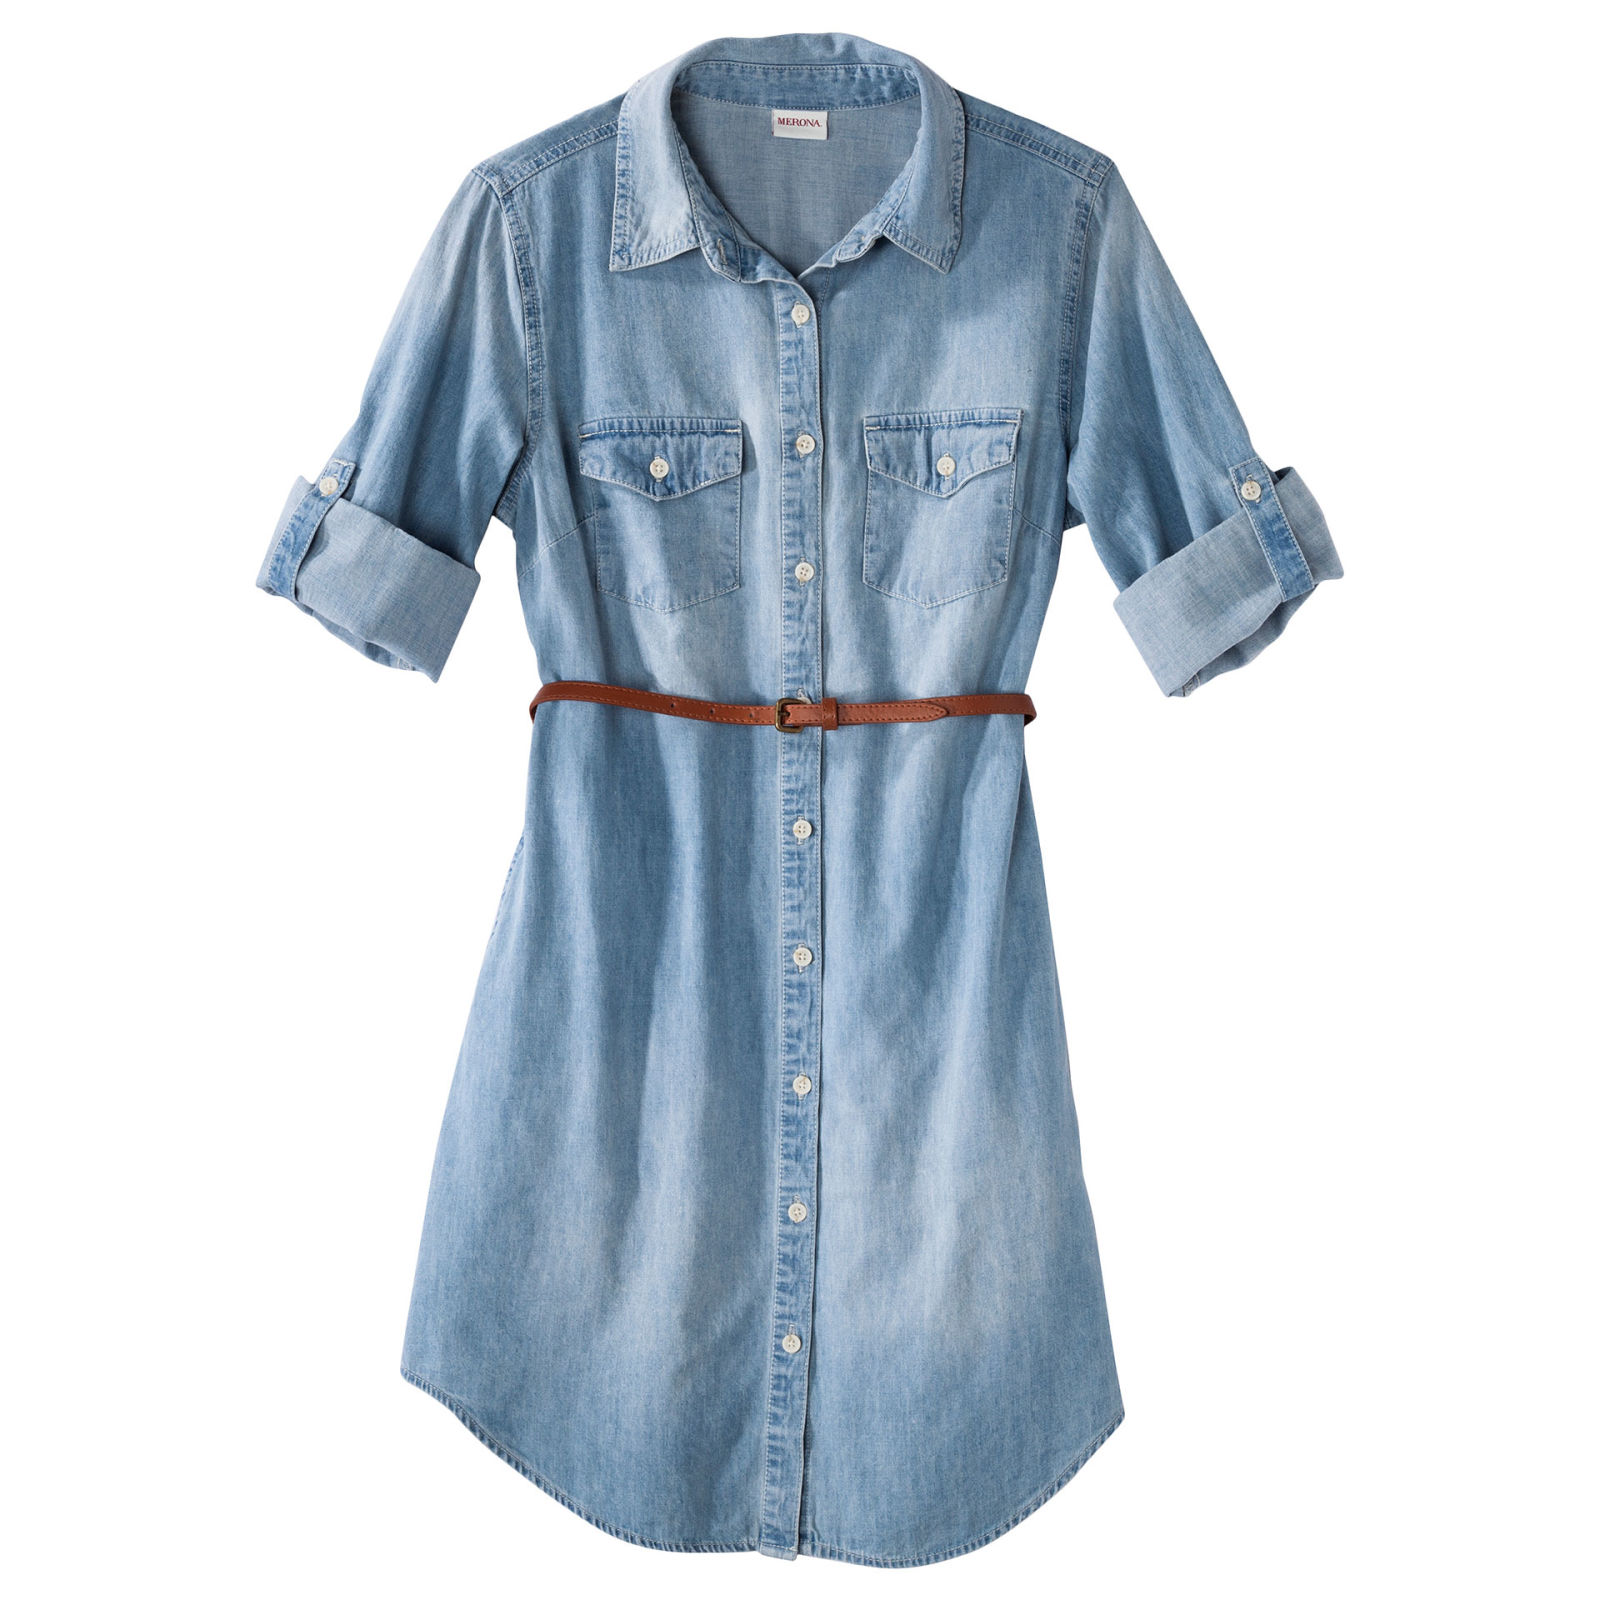 Innovative Cool Ladies Fall Long Sleeve Blue Jean Denim Shirt Tops Blouse Jacket